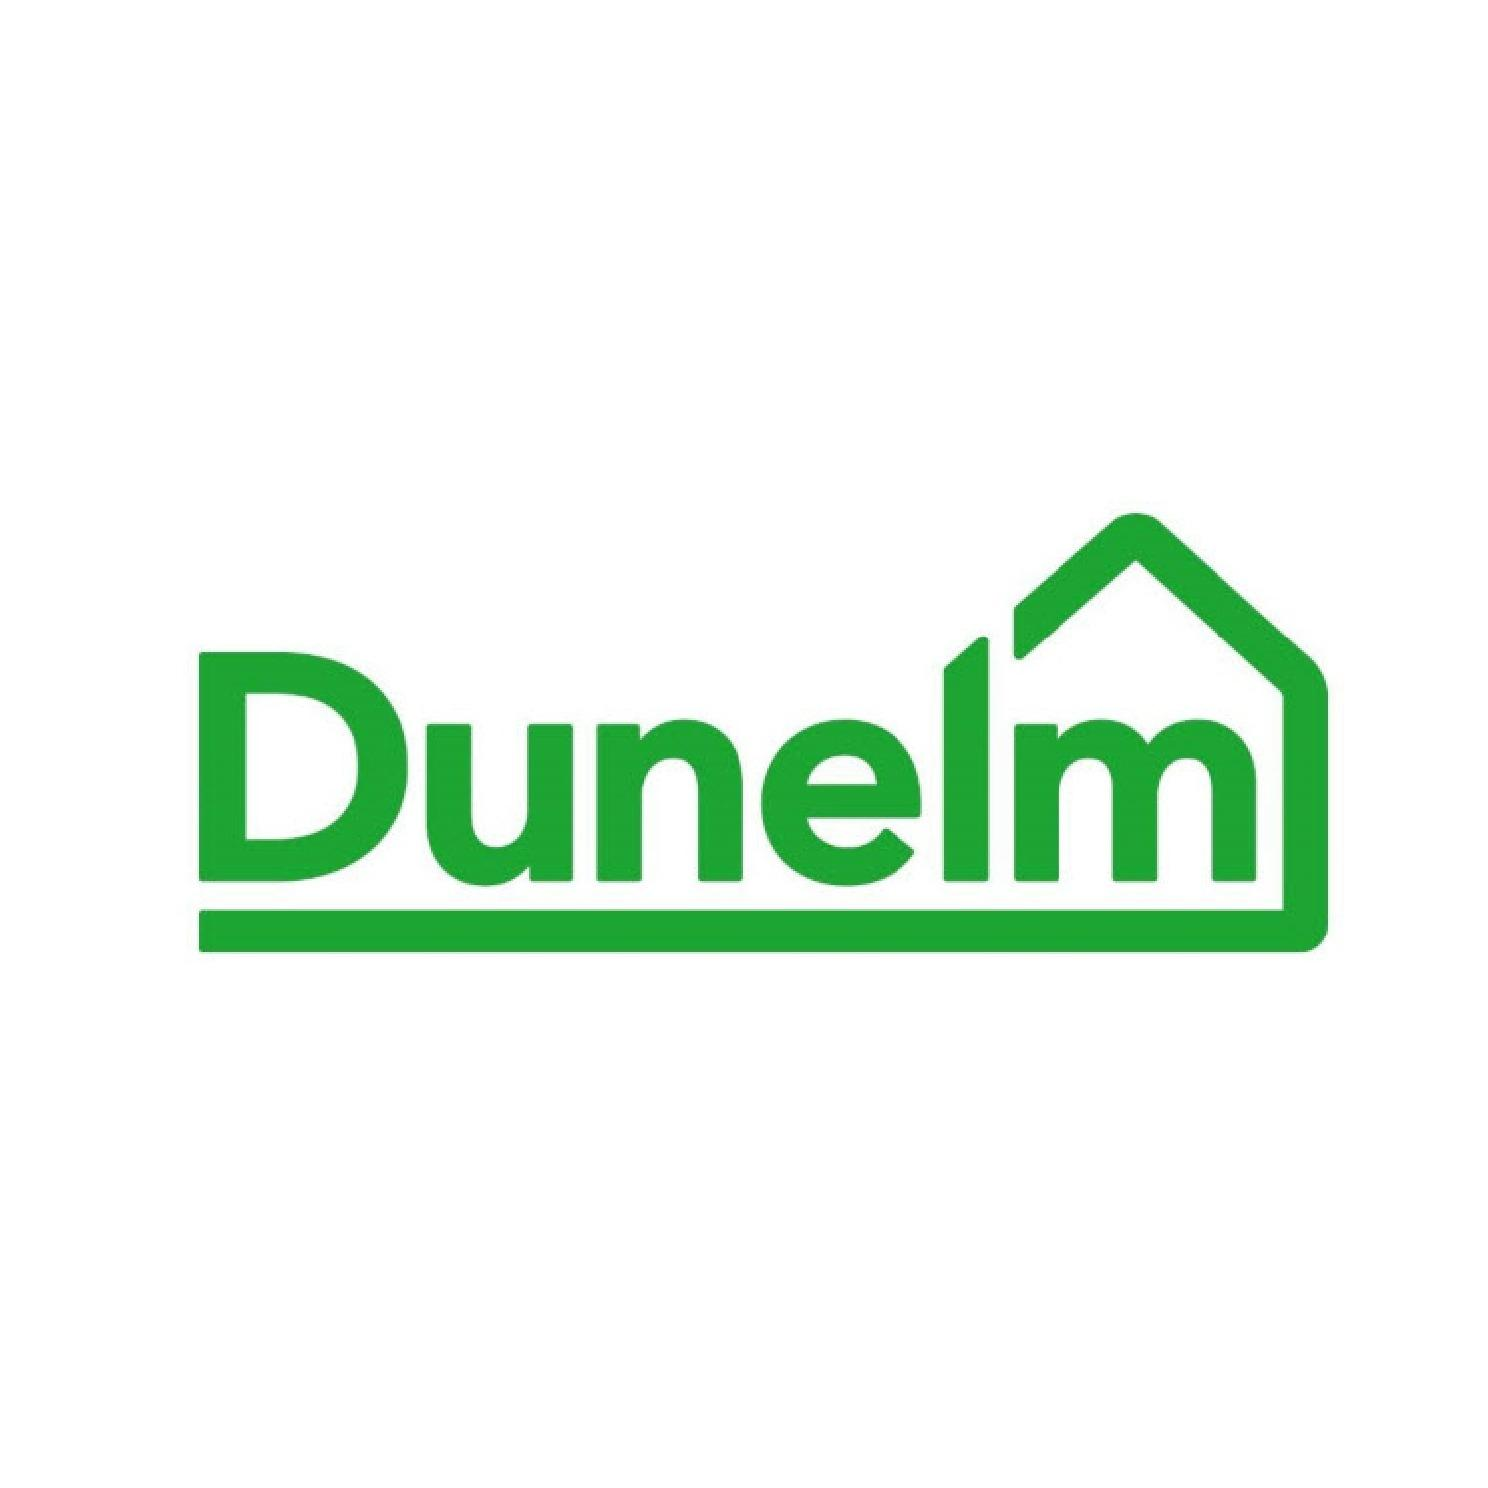 Dunelm - Perth, Perthshire PH1 5XA - 01738 639993 | ShowMeLocal.com